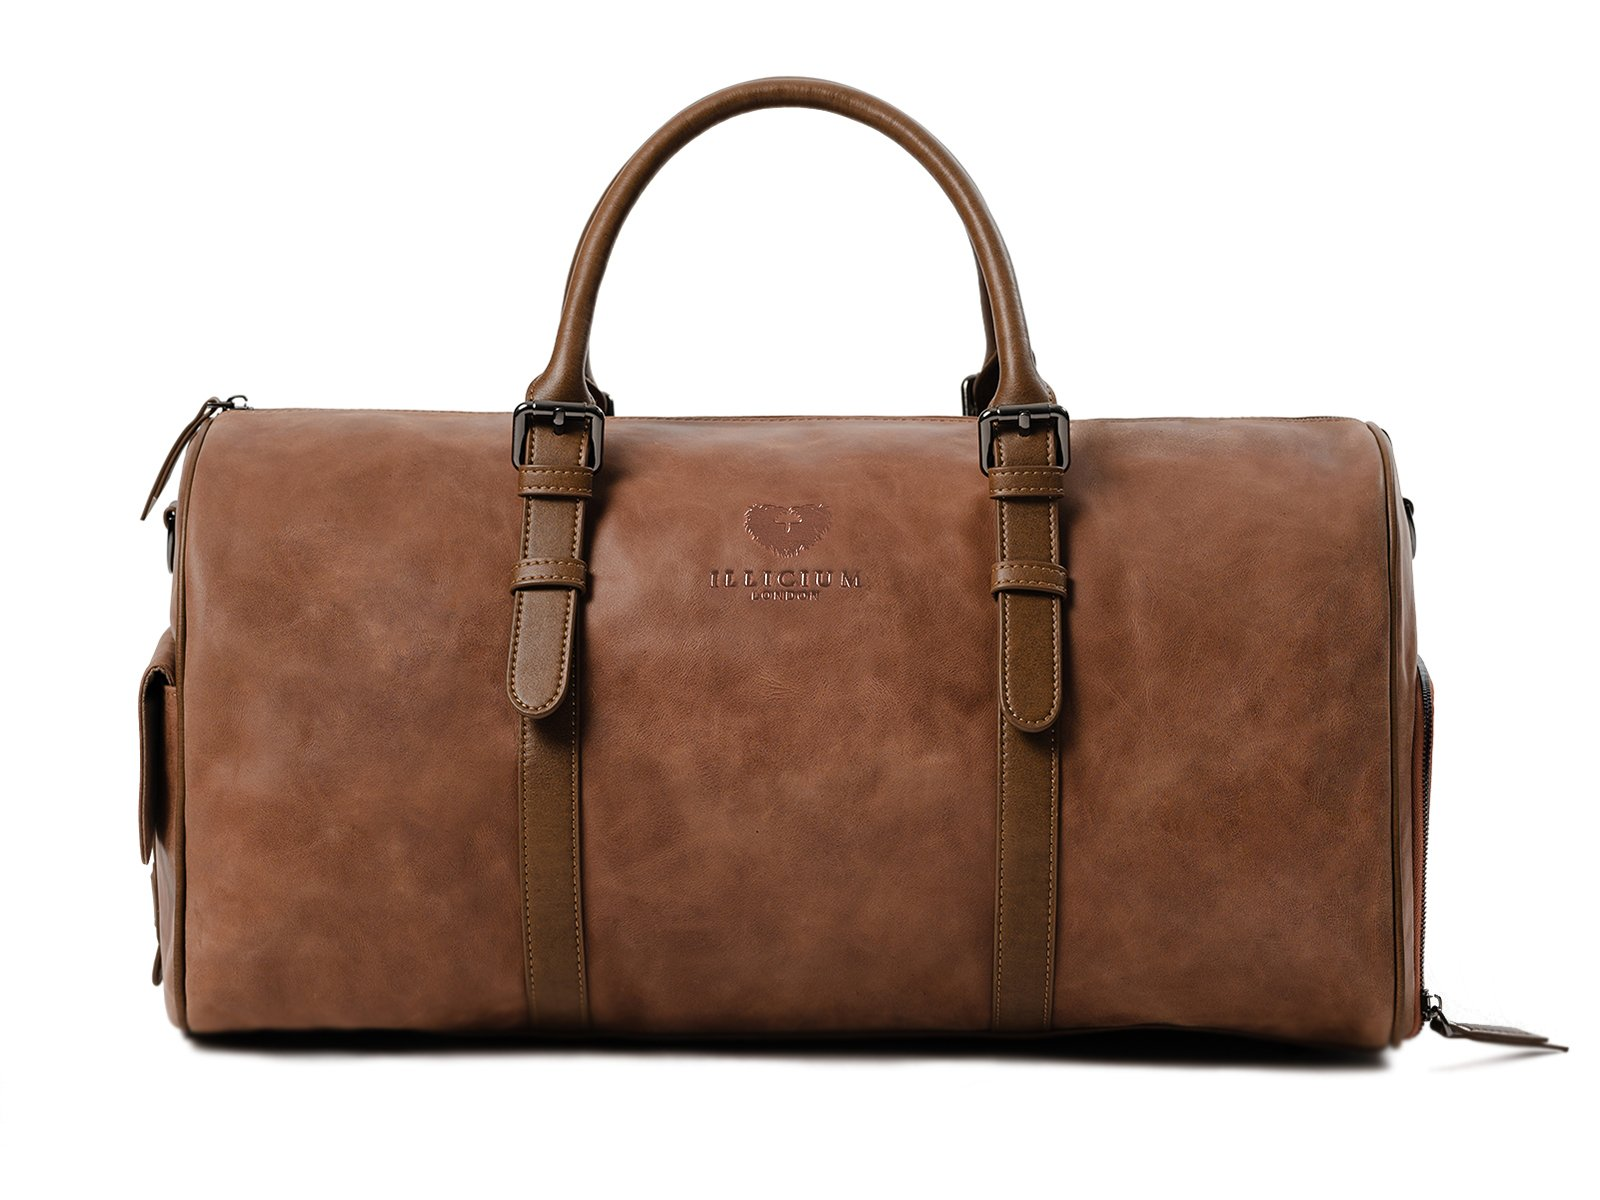 kingsman tan leather duffle bag